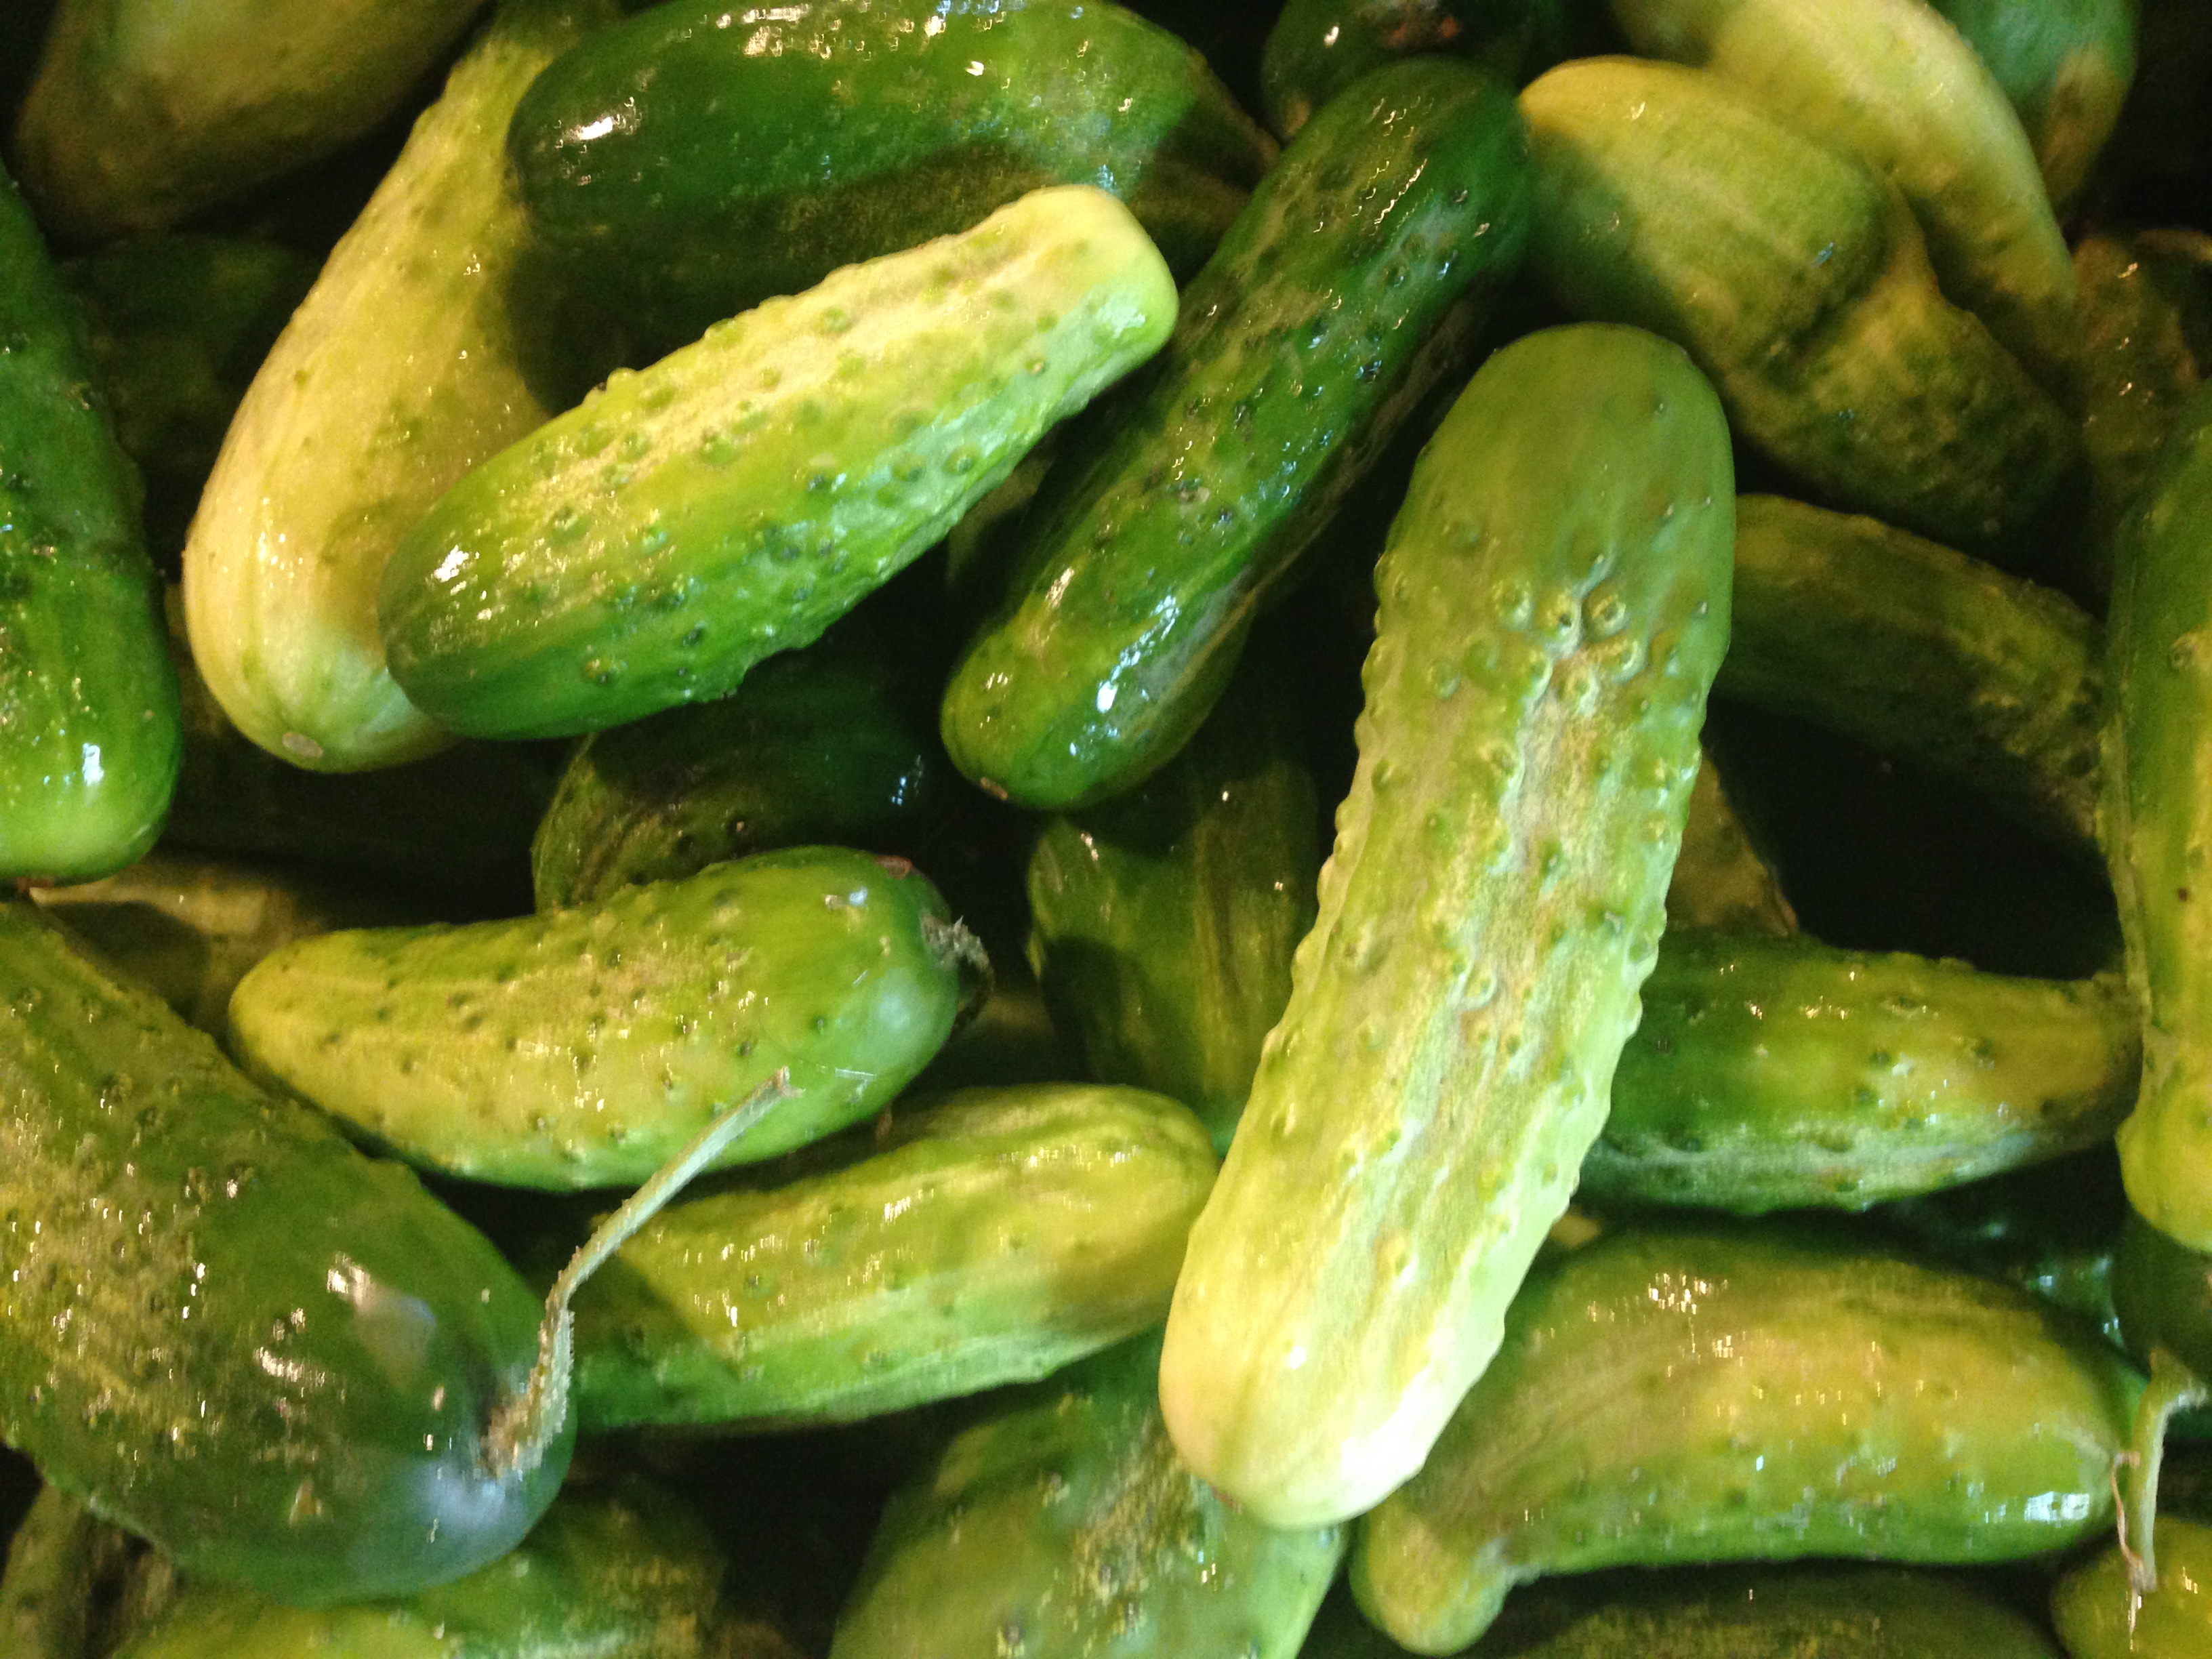 Beans & Greens Farm - crops pickling cucumbers